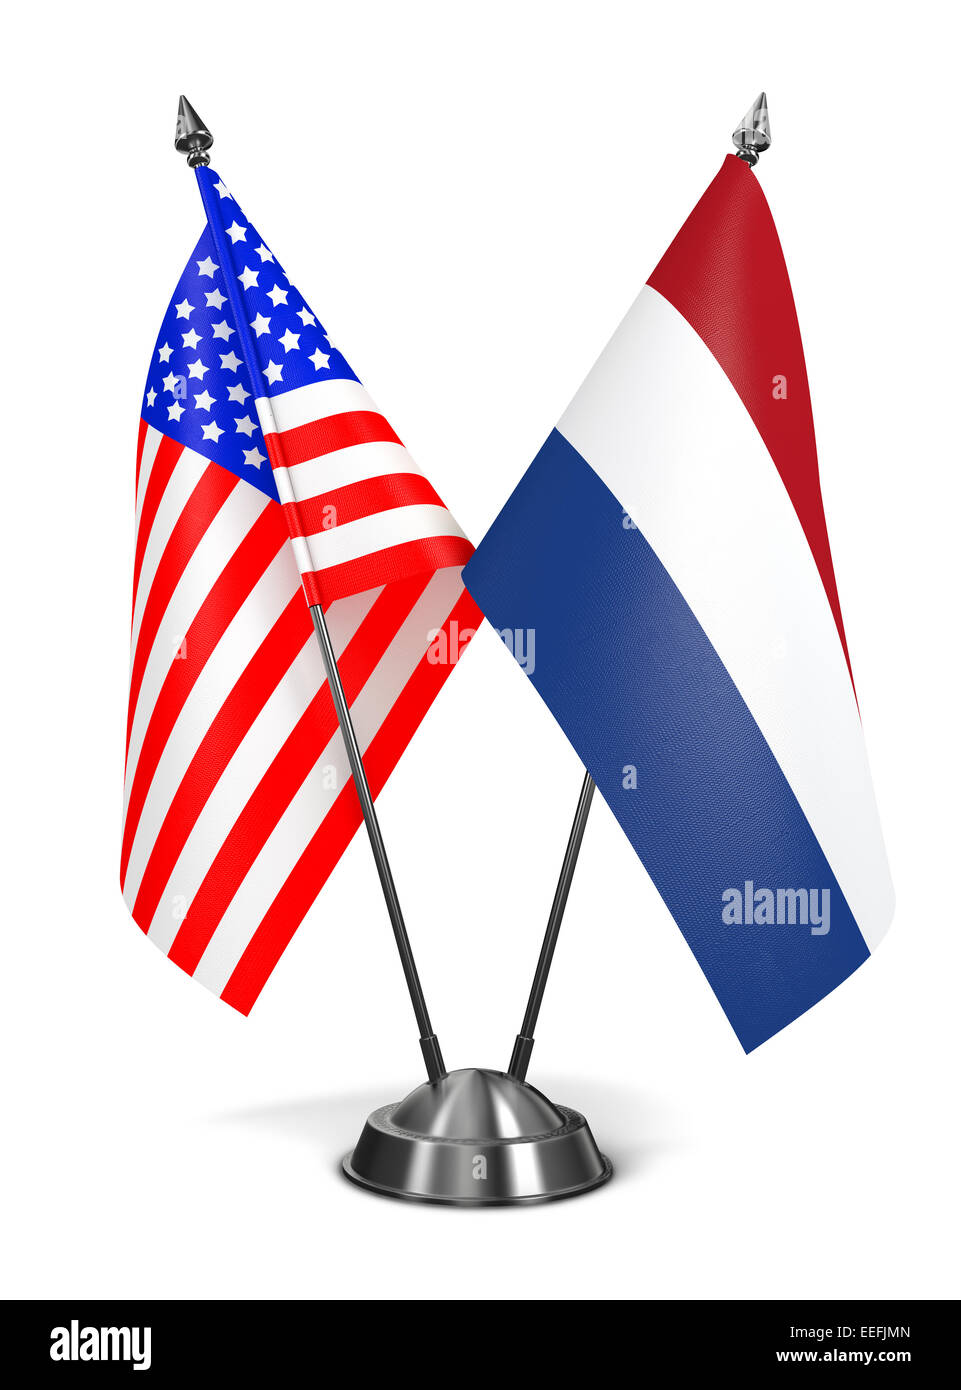 USA and Netherlands - Miniature Flags. Stock Photo